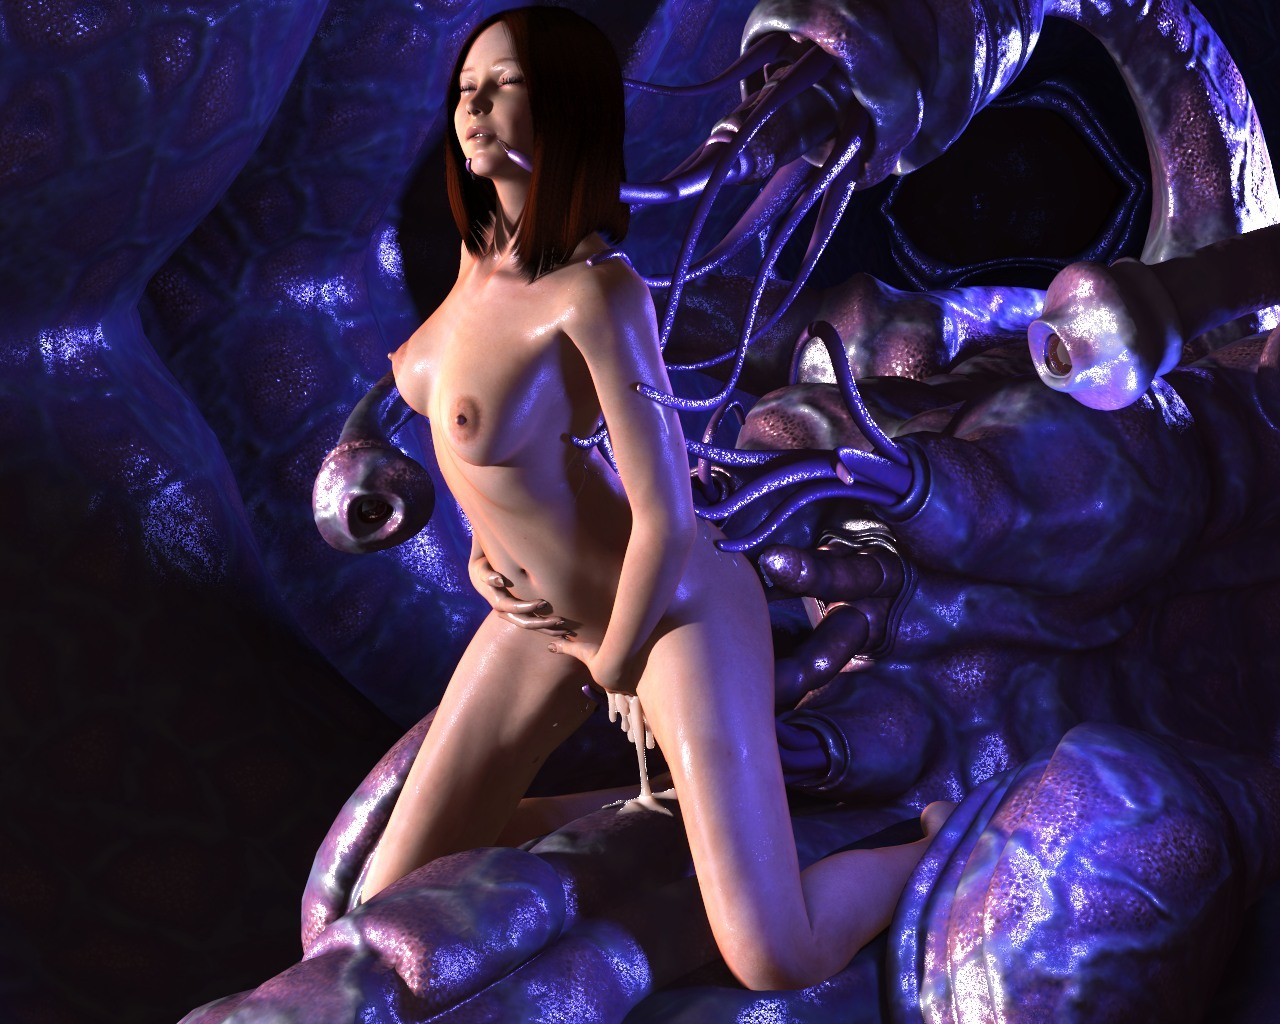 Nude monster woman wallpaper exploited pictures